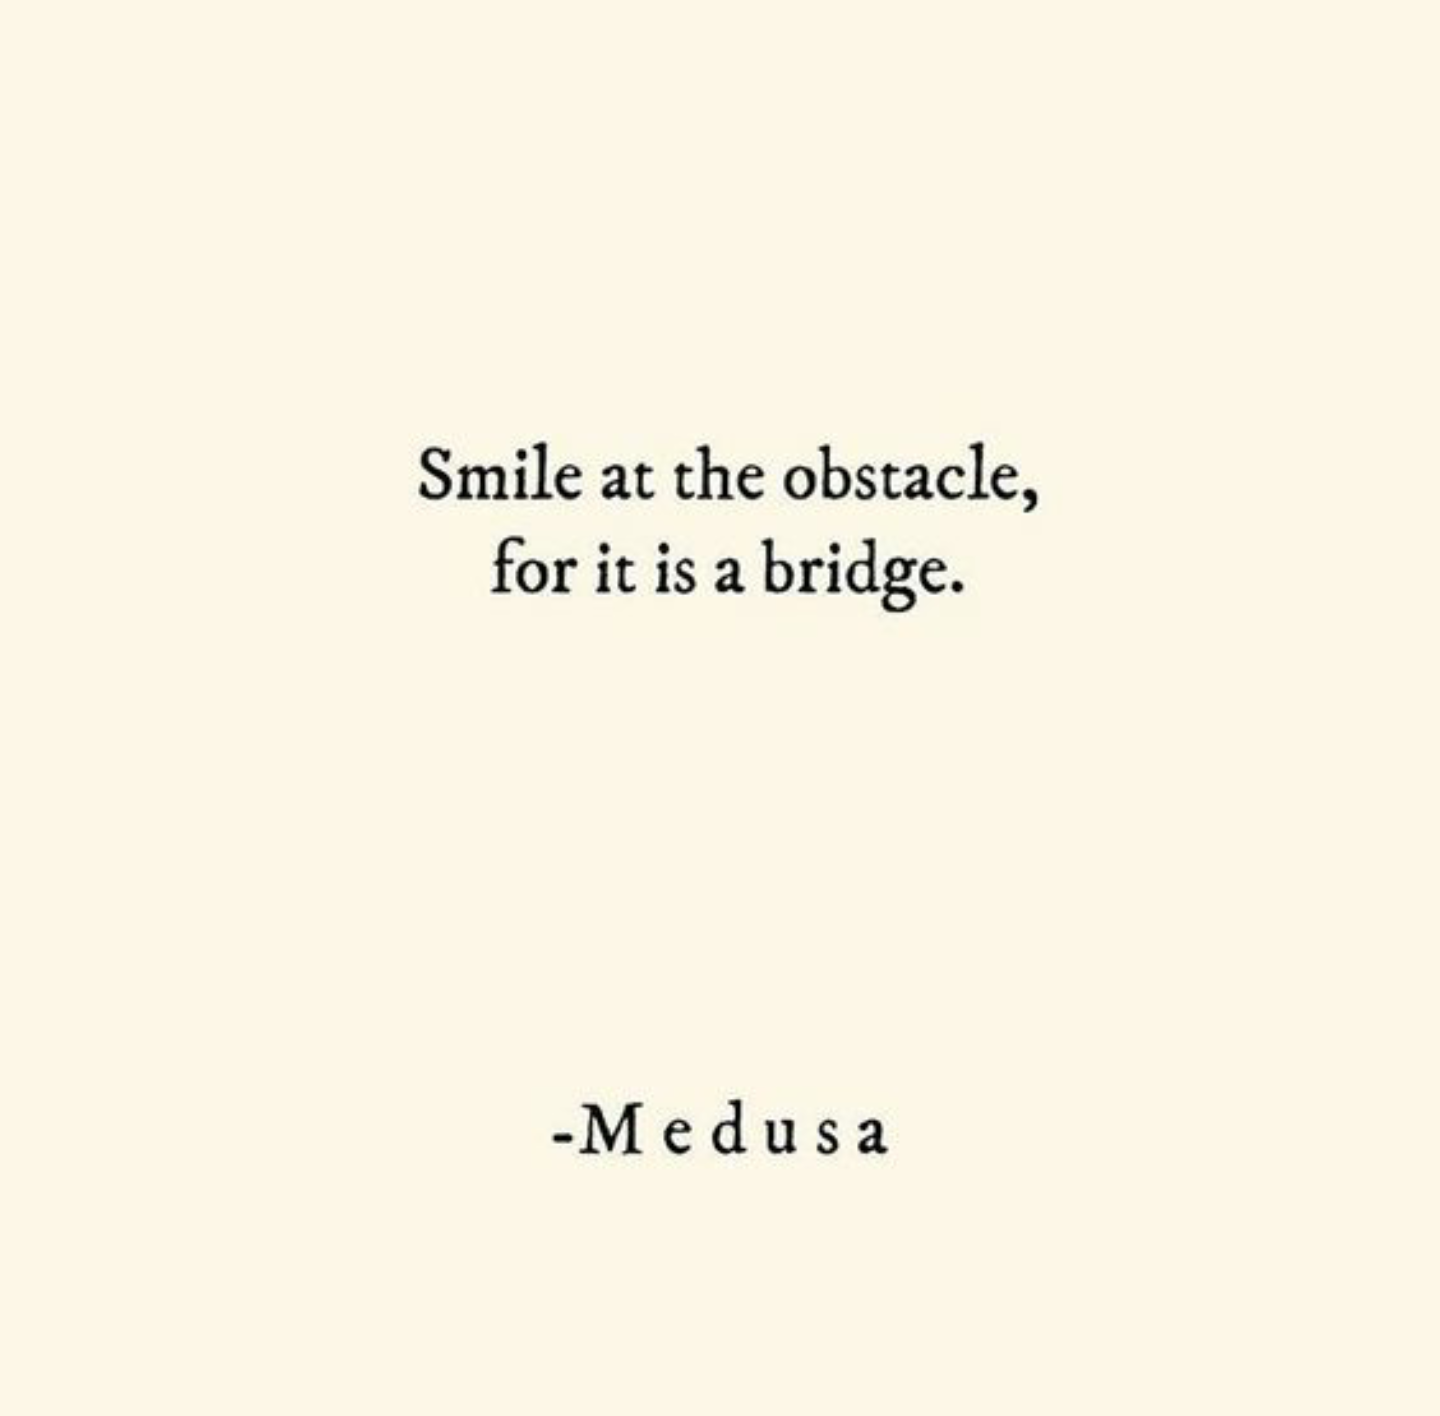 "[image] Smile at your obstacle, for it is a bridge"" -medusa"